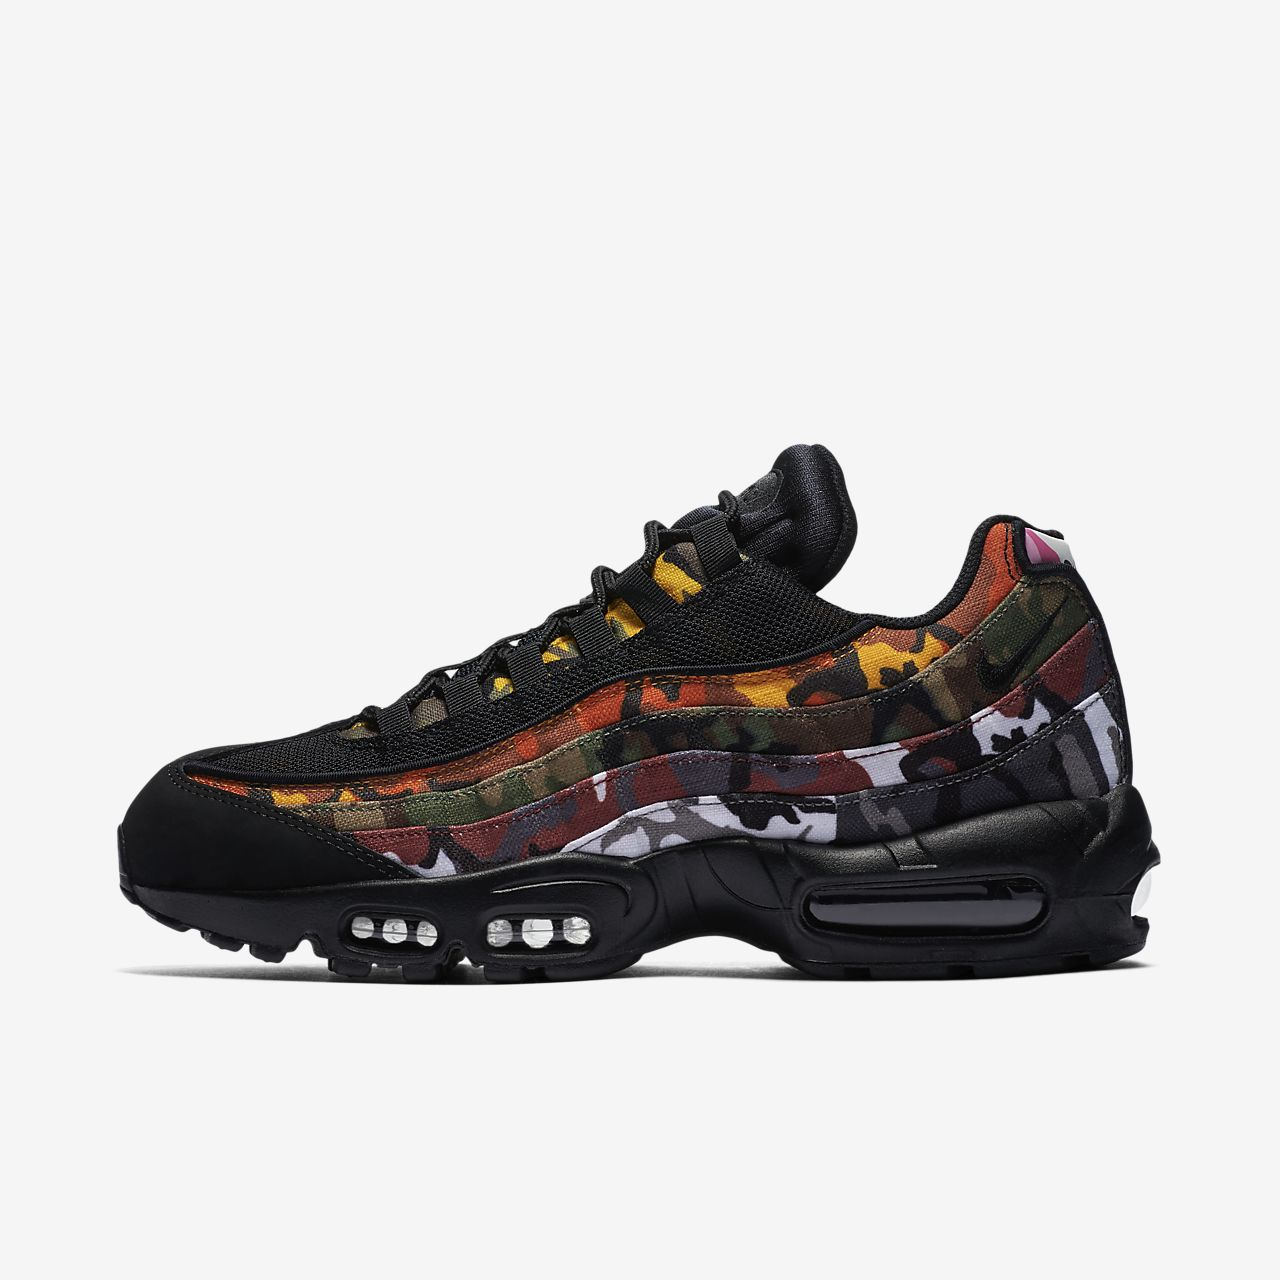 Chaussure Nike Air Max 95 OG MC SP pour BE